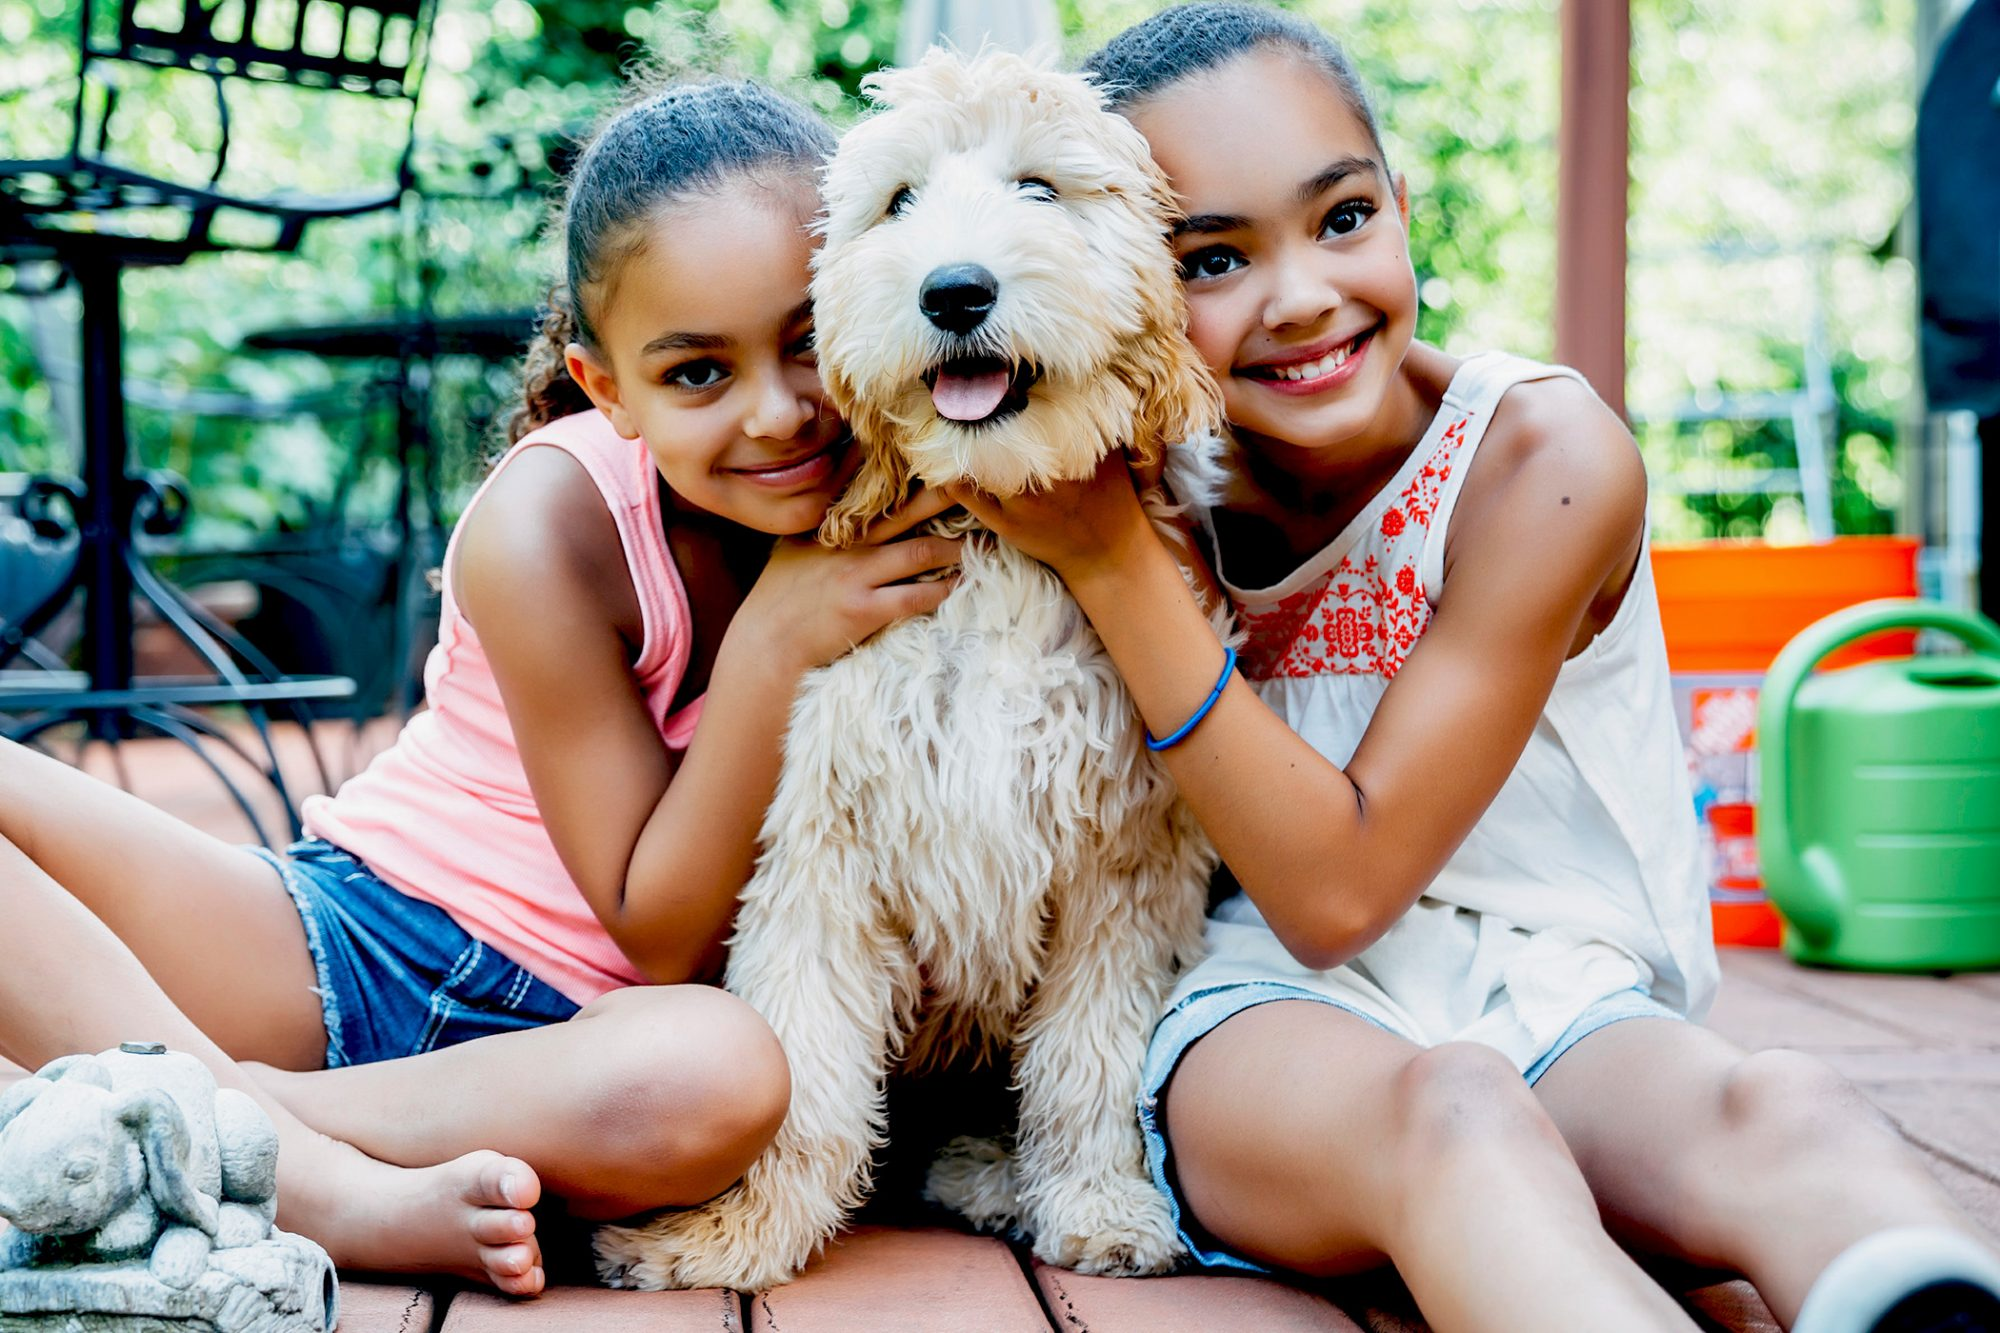 Two girls embrace blond labradoodle from both sides on outdoor deck